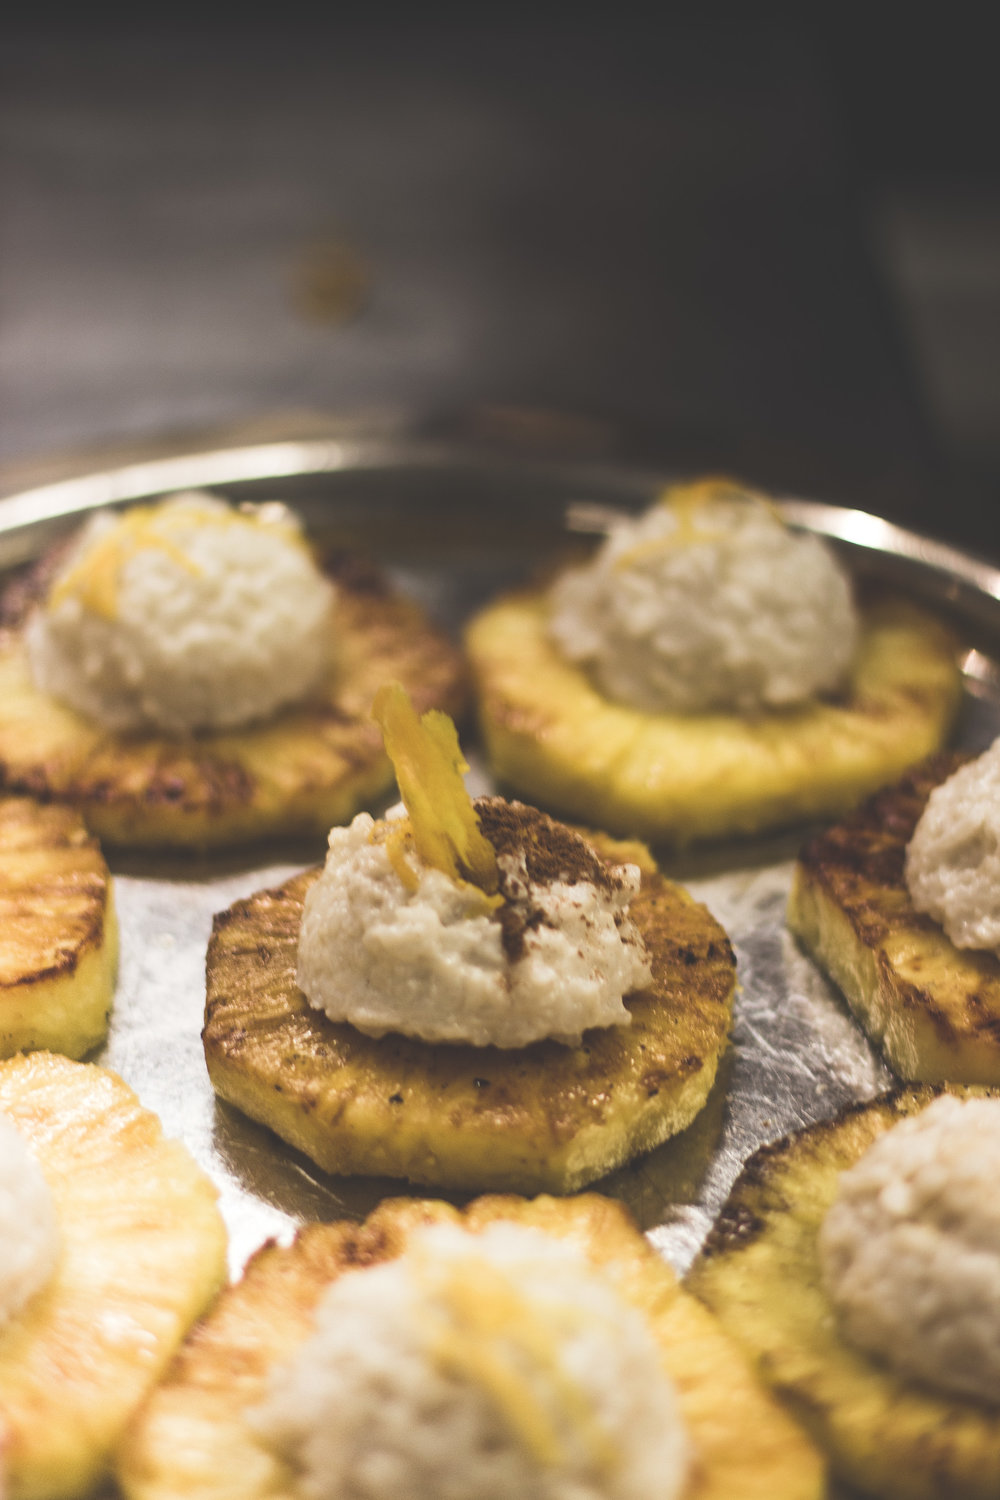 Coconut Parmigiano Reggiano Rice Pudding with Grilled Pineapple - Our dessert came out beautifully!